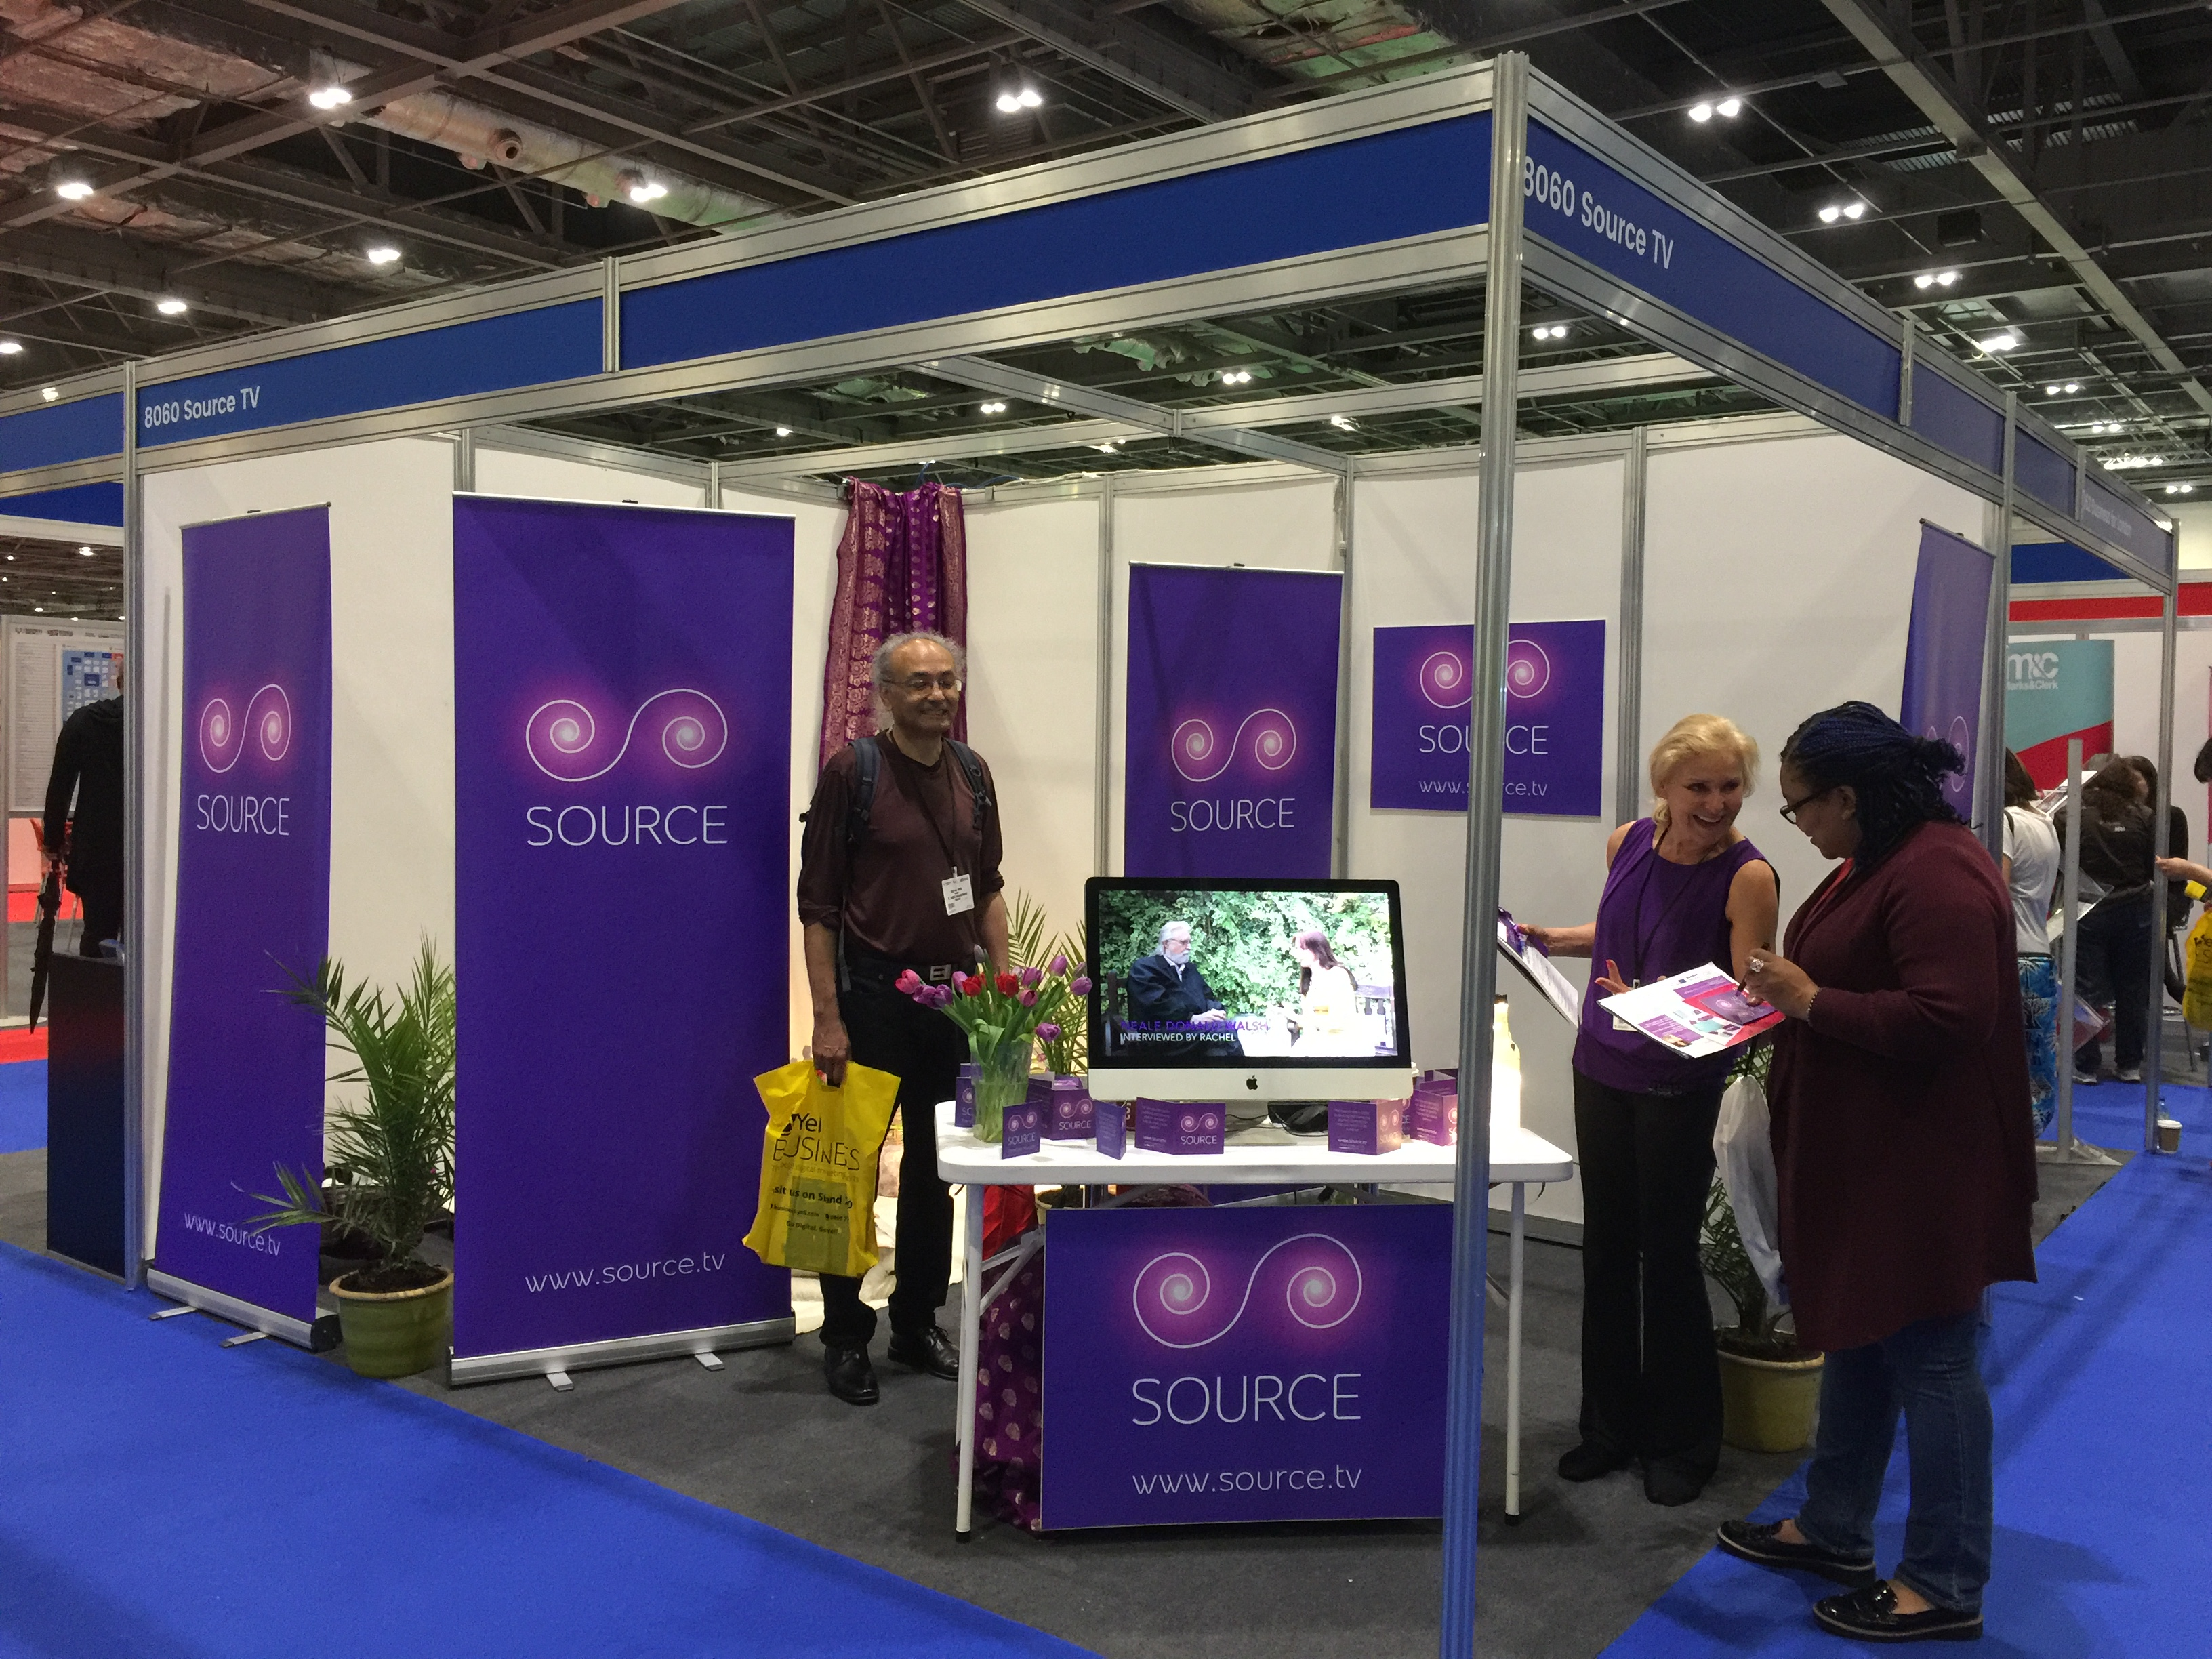 SOURCE WILL BE AT THE GREAT BRITISH BUSINESS SHOW 14/15 NOVEMBER 2018